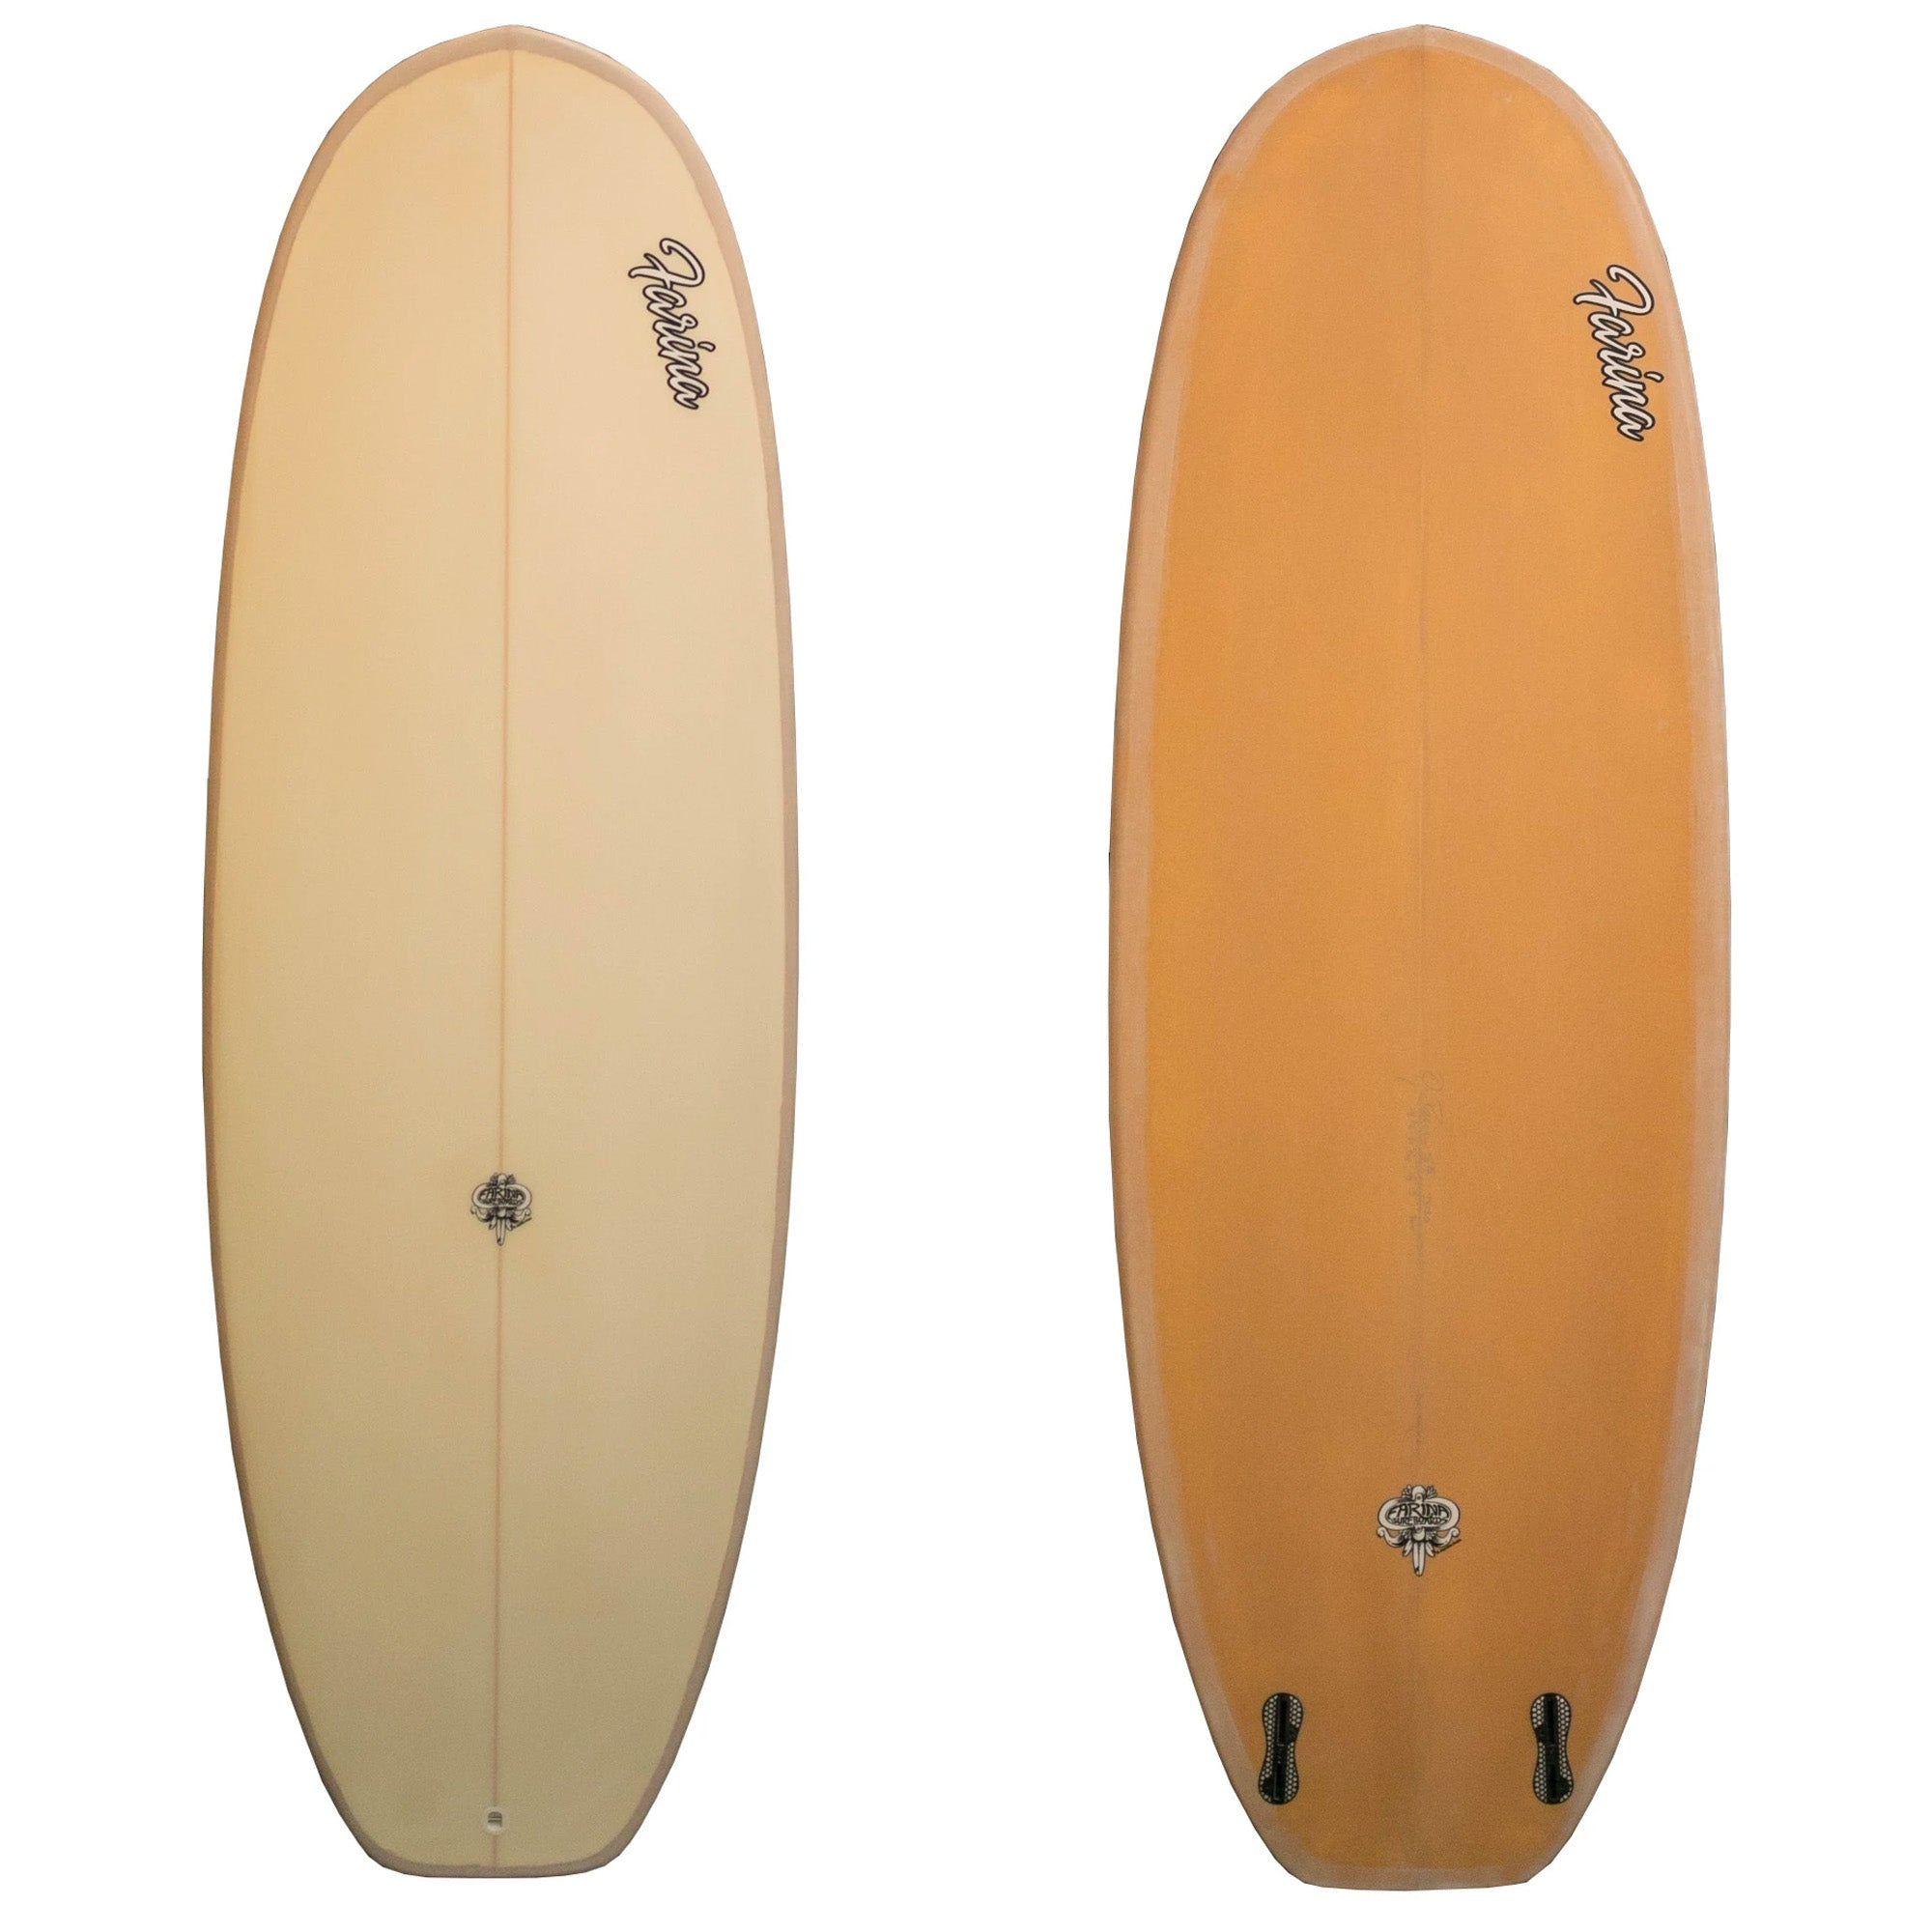 Farina Handcrafted 5'8 Mini Simmons Surfboards